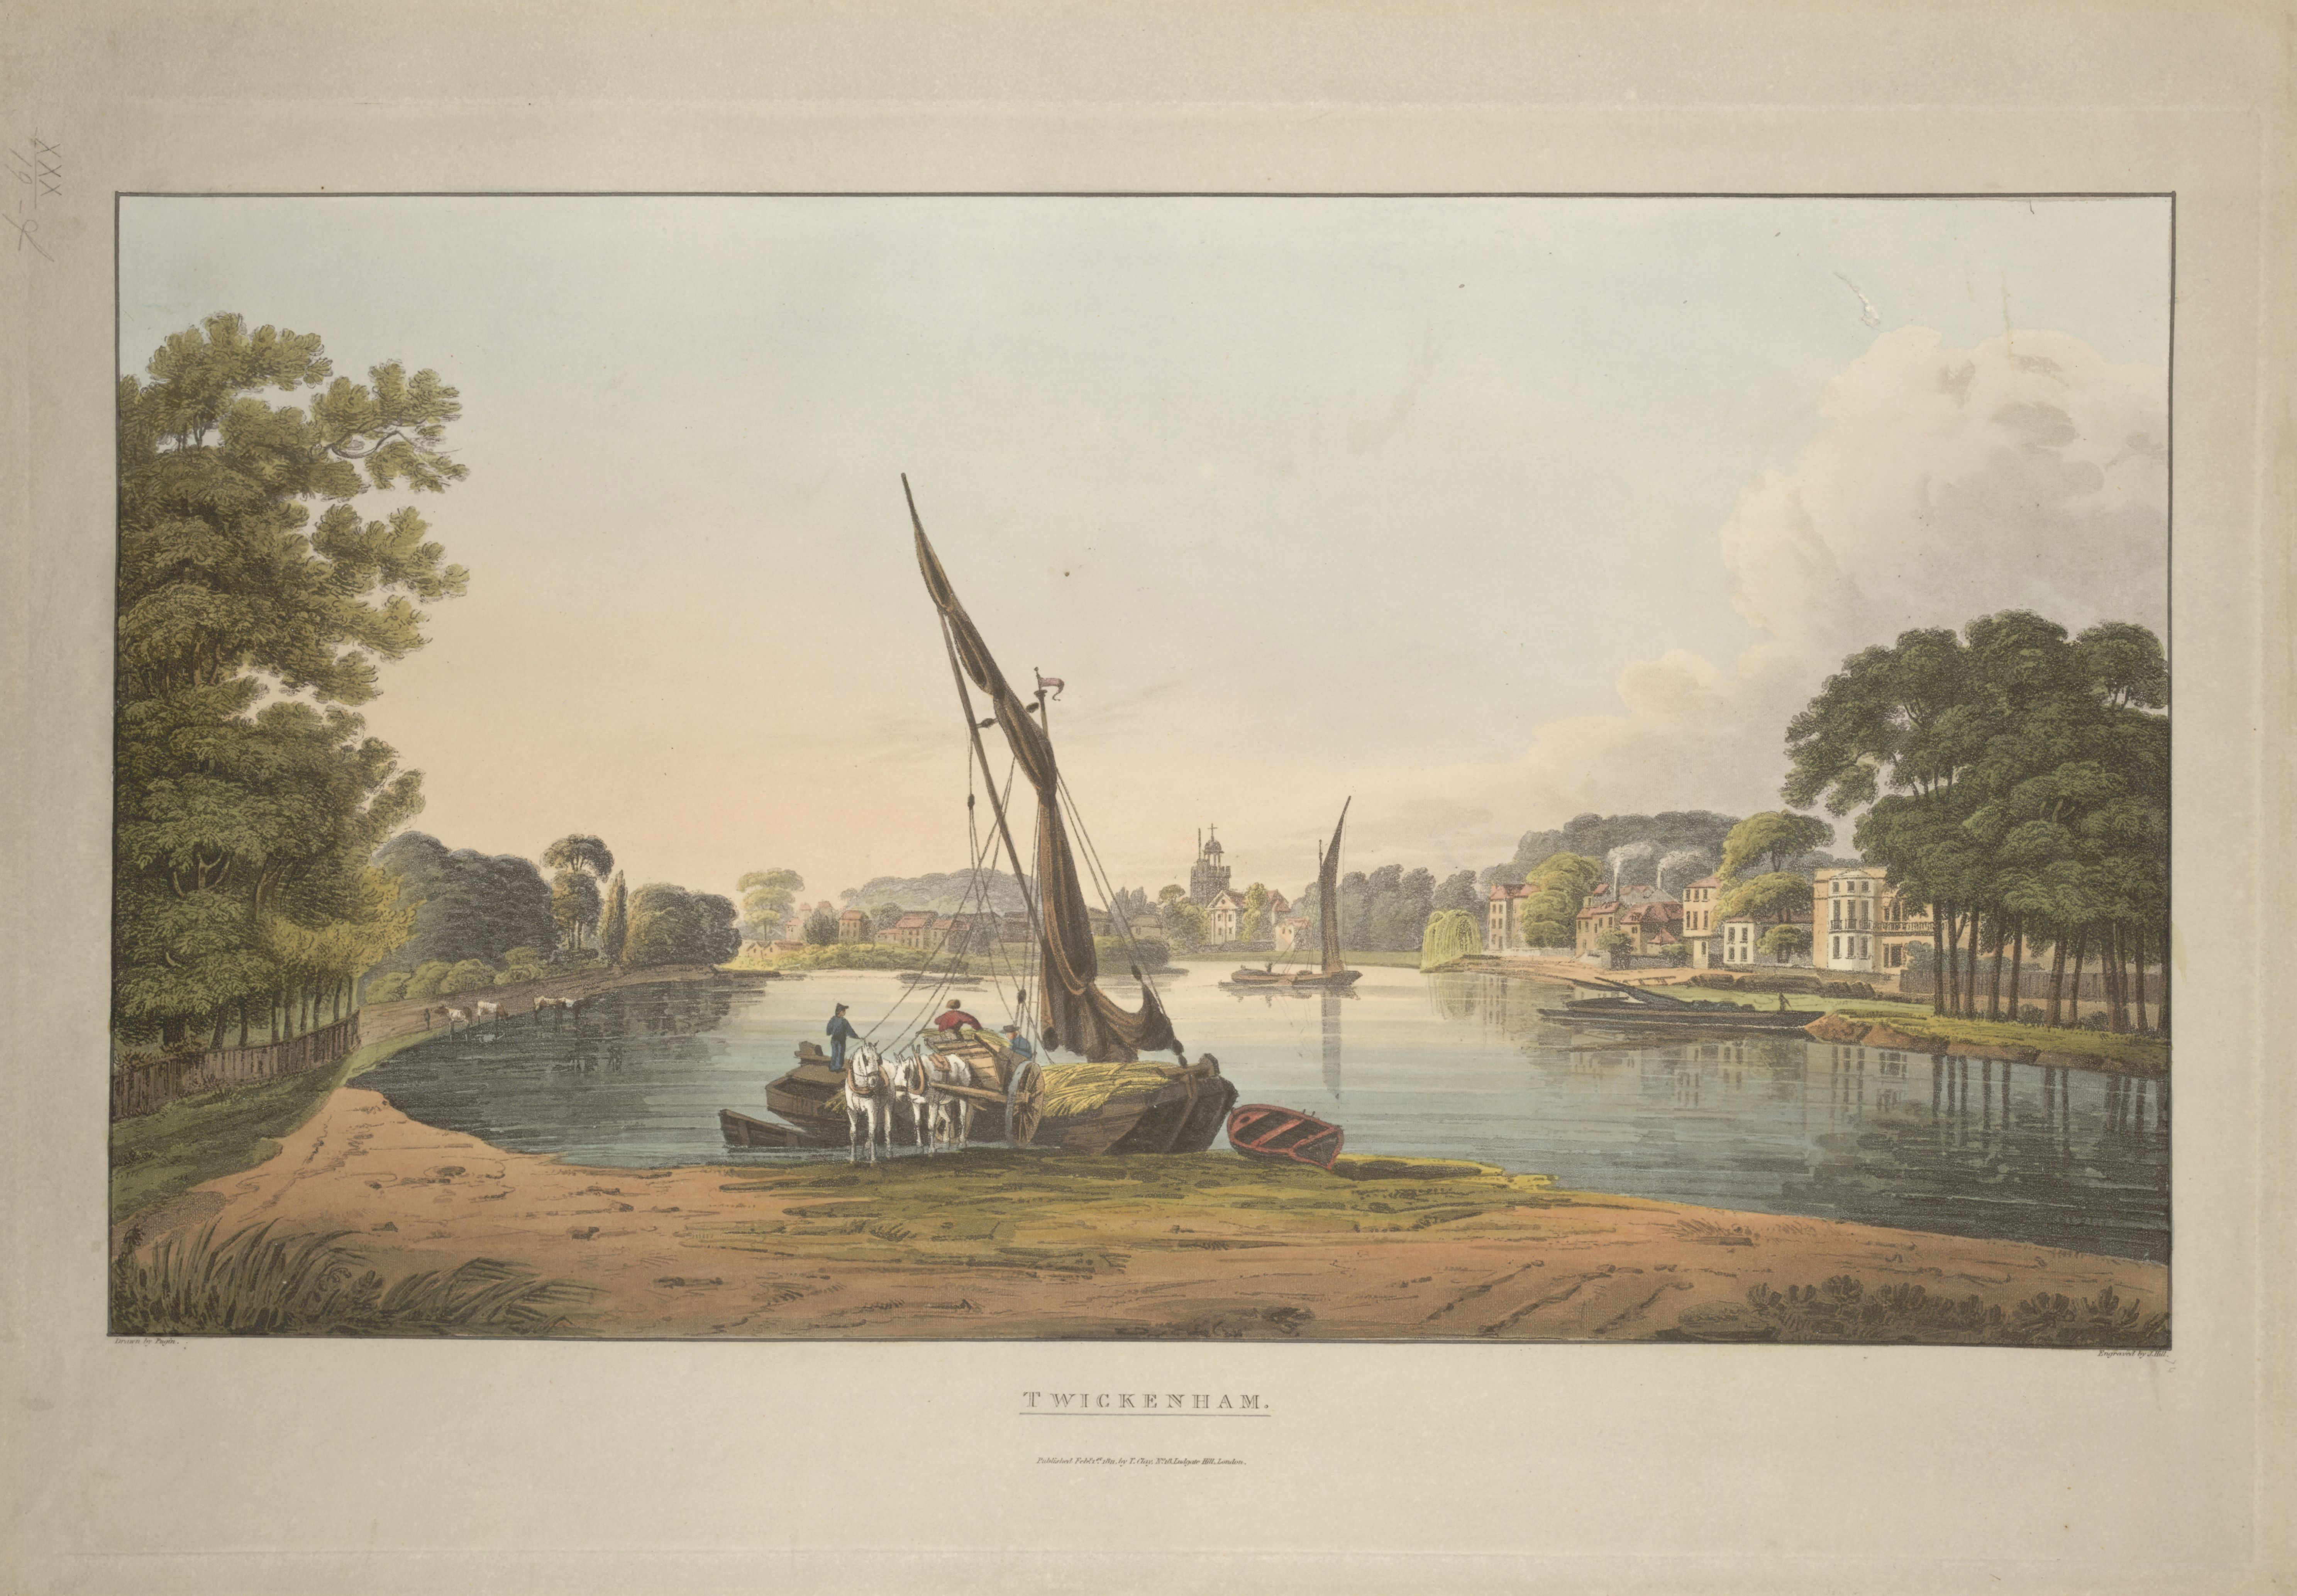 Figures loading cargo from a boat onto a cart led by horses; a river in the centre of the scene; houses on the right bank and in the distance; trees on either side; TWICKENHAM. / Drawn by Pugin ; Engraved by J. Hill. John Hill, 1770-1850, printmaker. [London] : Published Feby 1 1811 by T. Clay No 18 Ludgate Hill London., [February 1 1811]